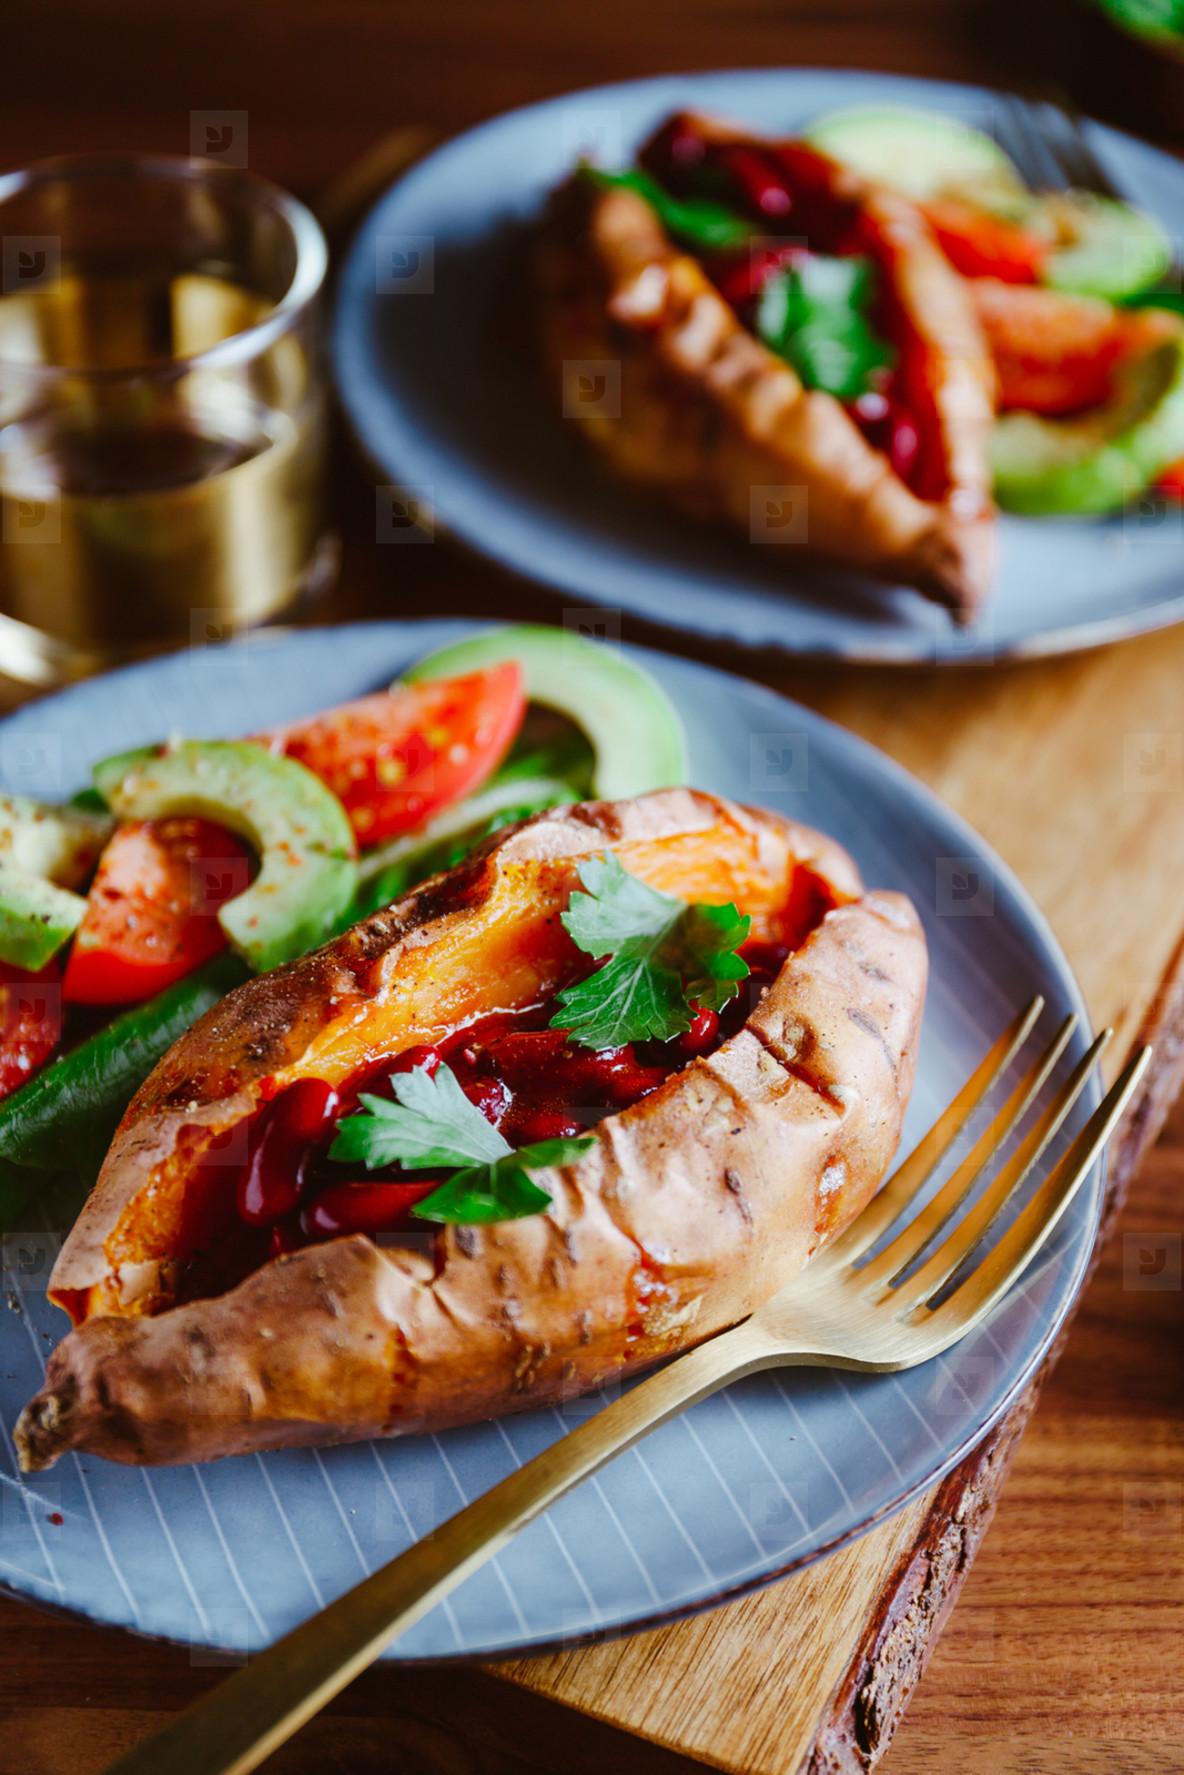 Baked sweet potato filled with red beans stewed in tomato paste served with avocado and cherry tomatoes on a plate  Healthy veggie recipe